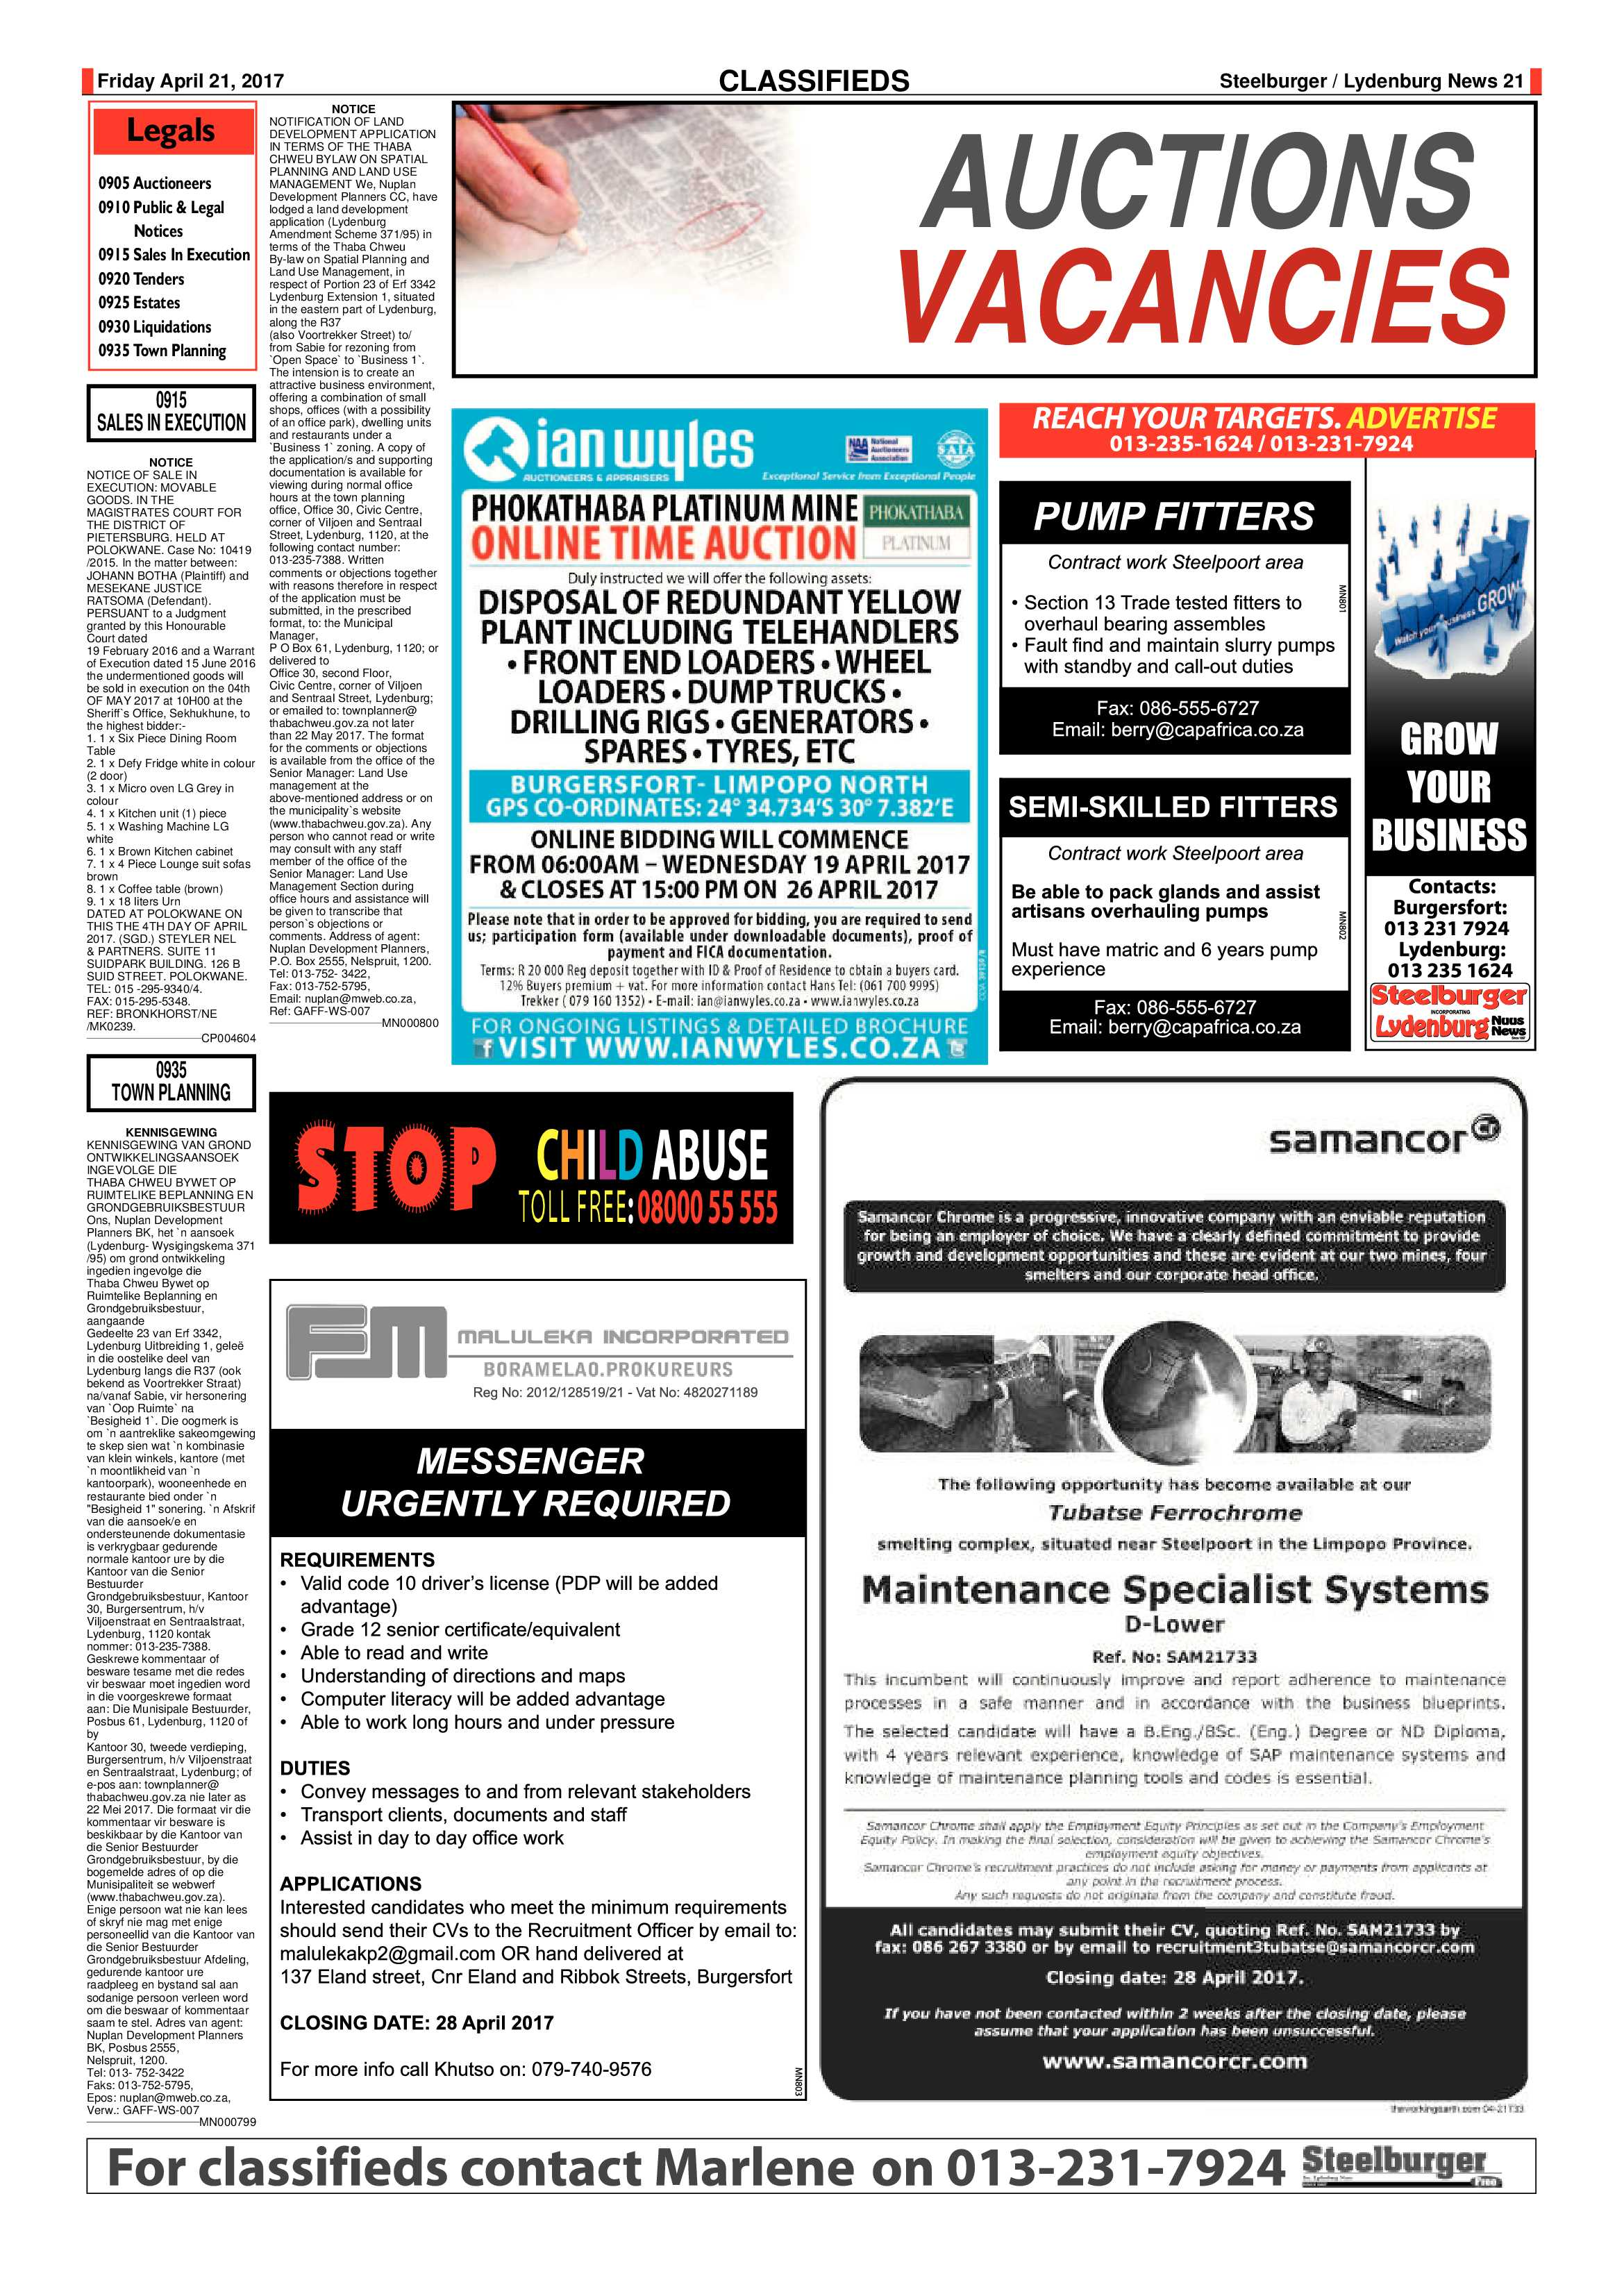 steelburger-news-21-april-2017-epapers-page-21